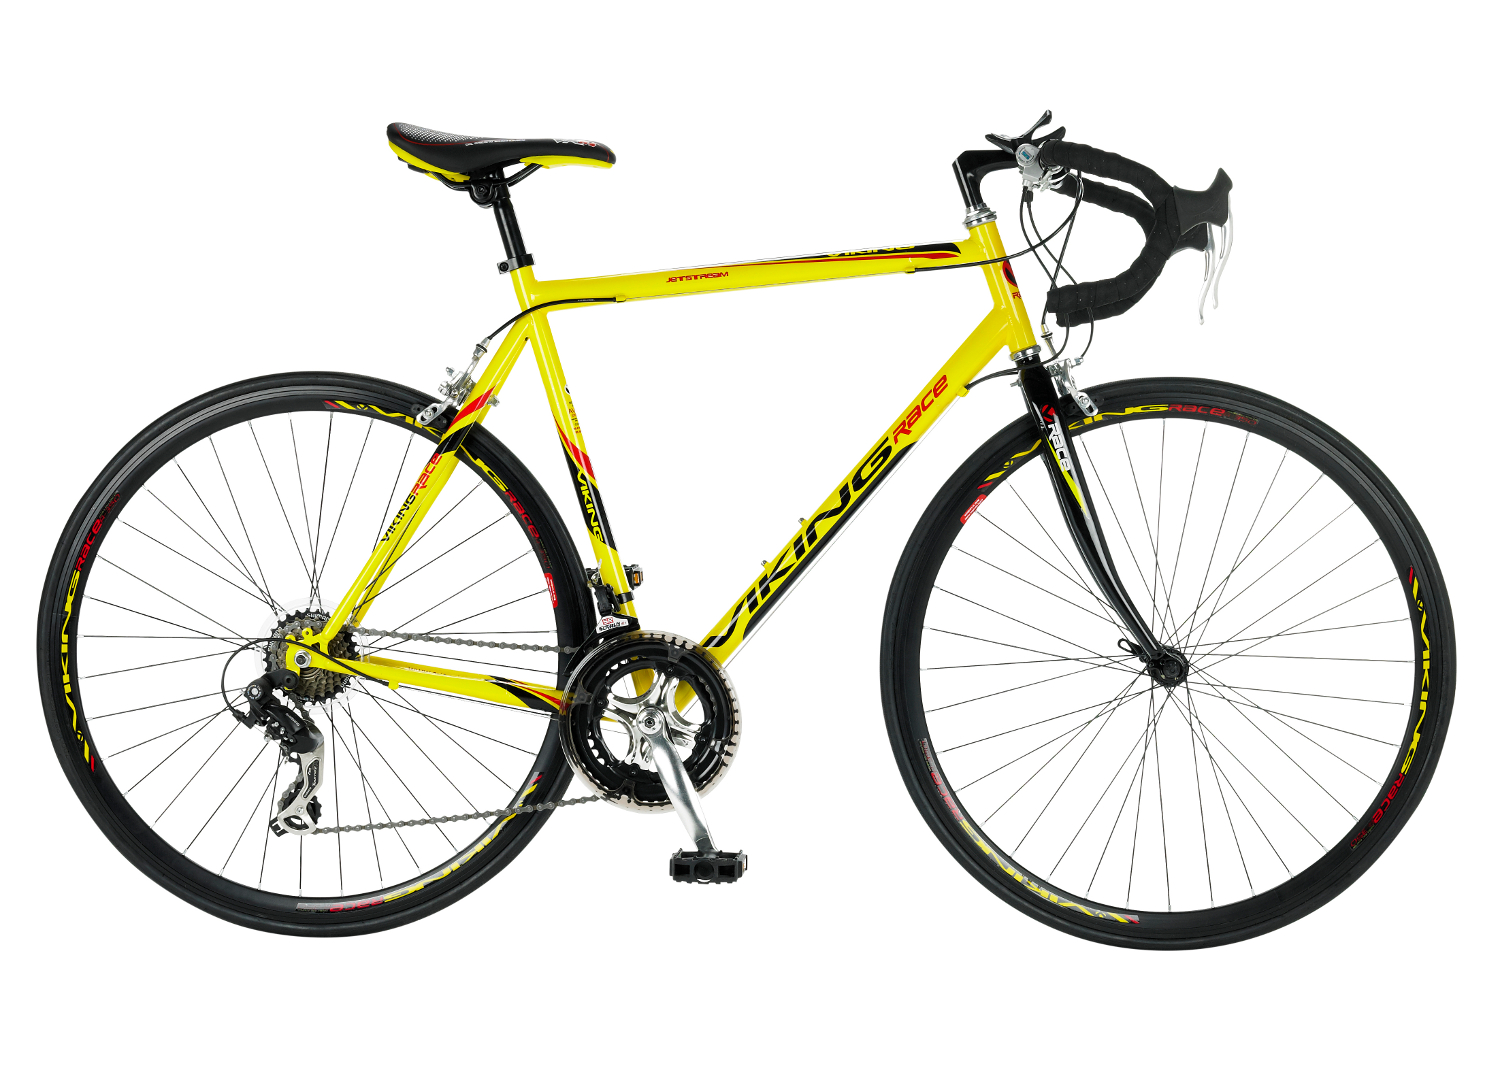 viking jetstream 700c lightweight mens road bike yellow 14 speed new ebay. Black Bedroom Furniture Sets. Home Design Ideas